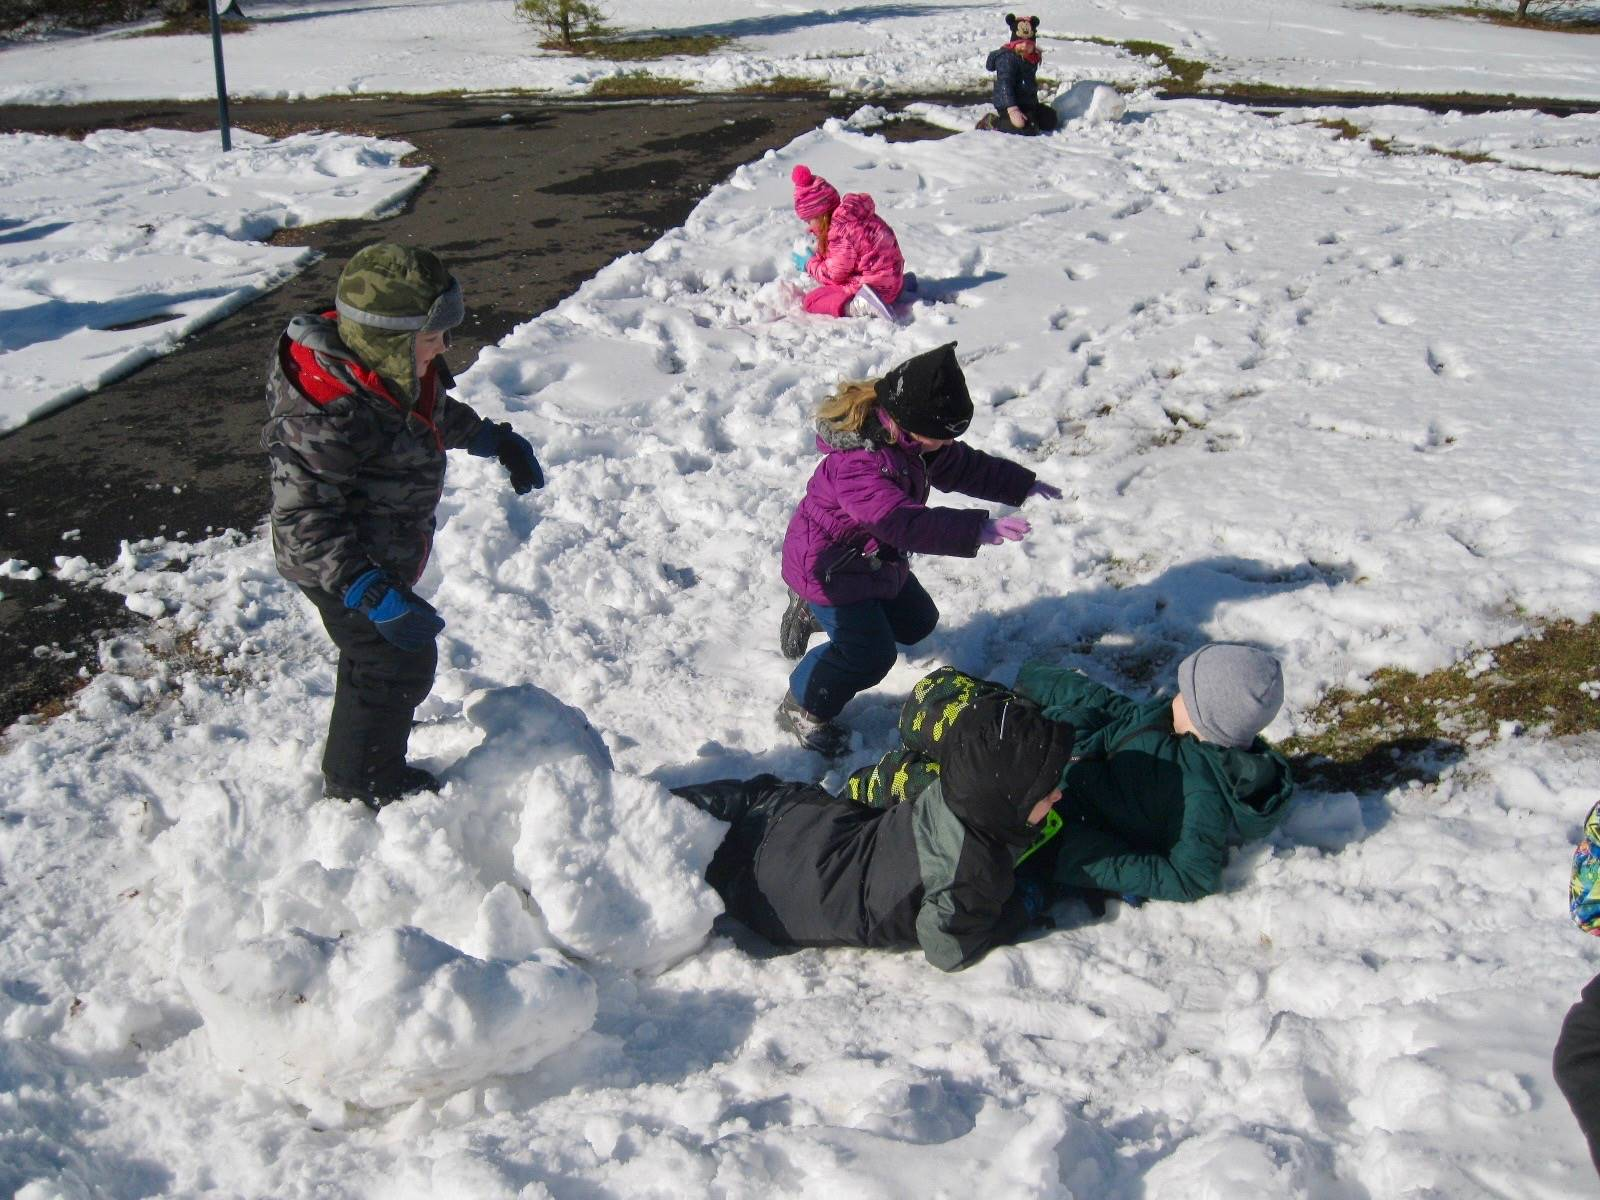 Students jumping in snow.